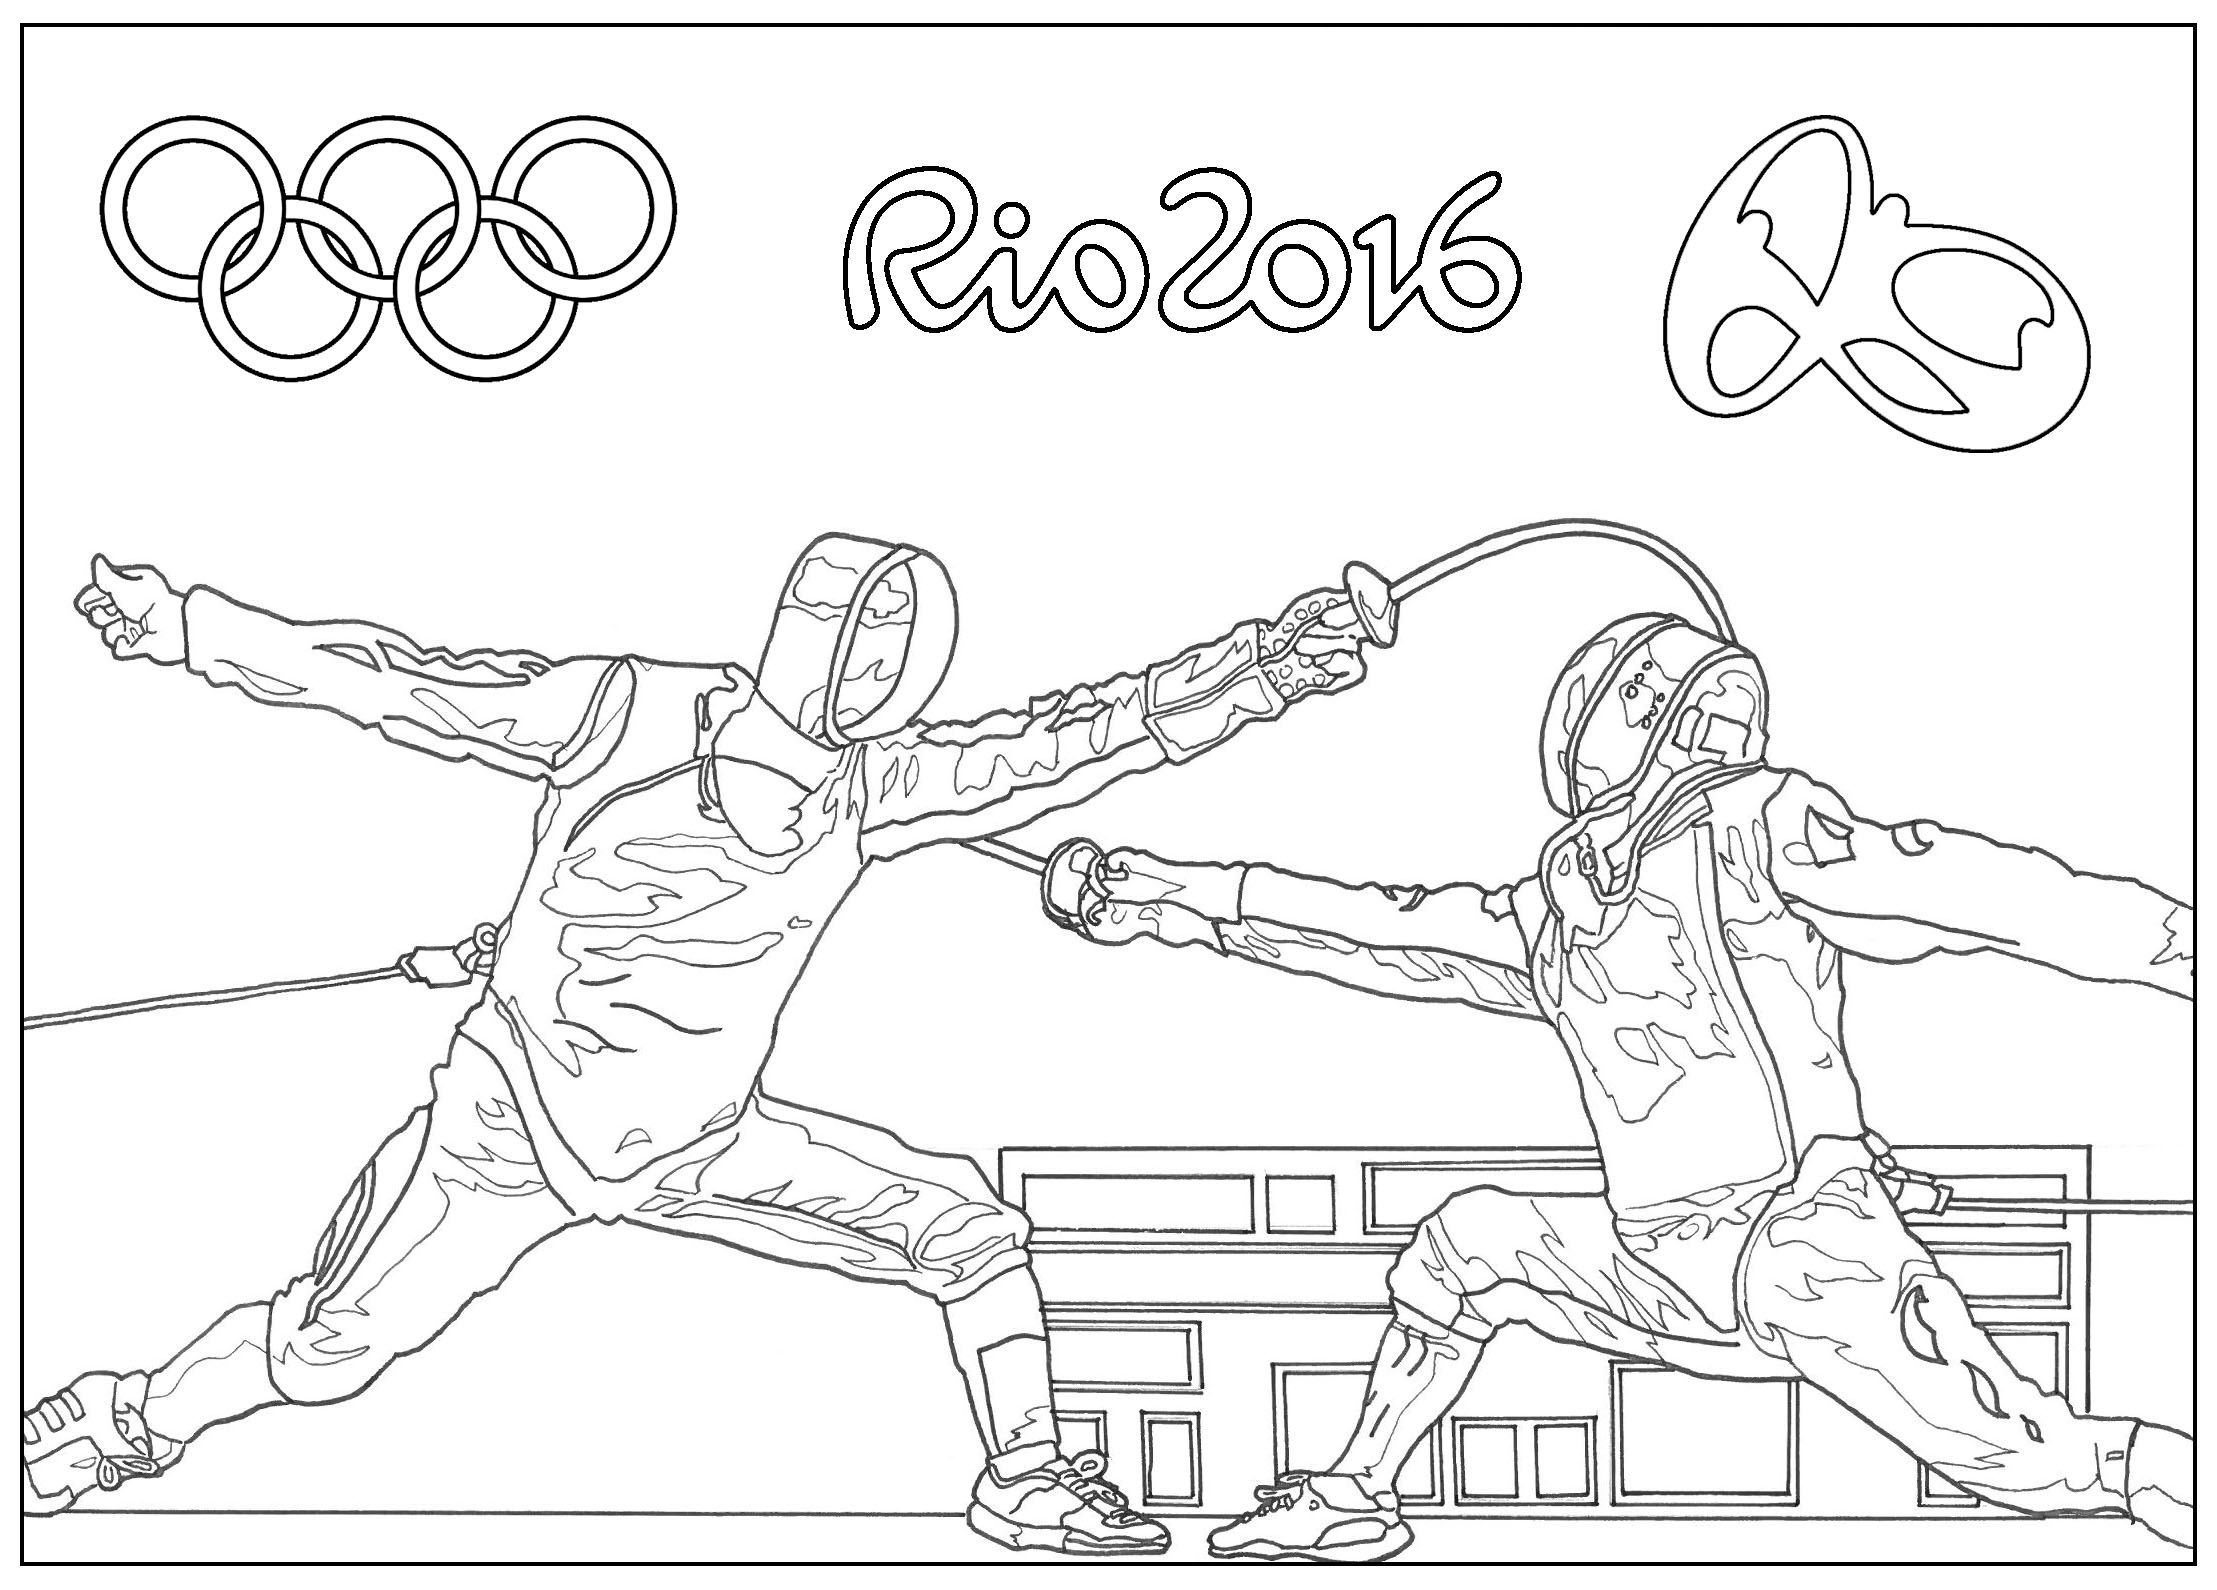 Rio 2016 Olympic Games Fencing Olympic And Sport Coloring